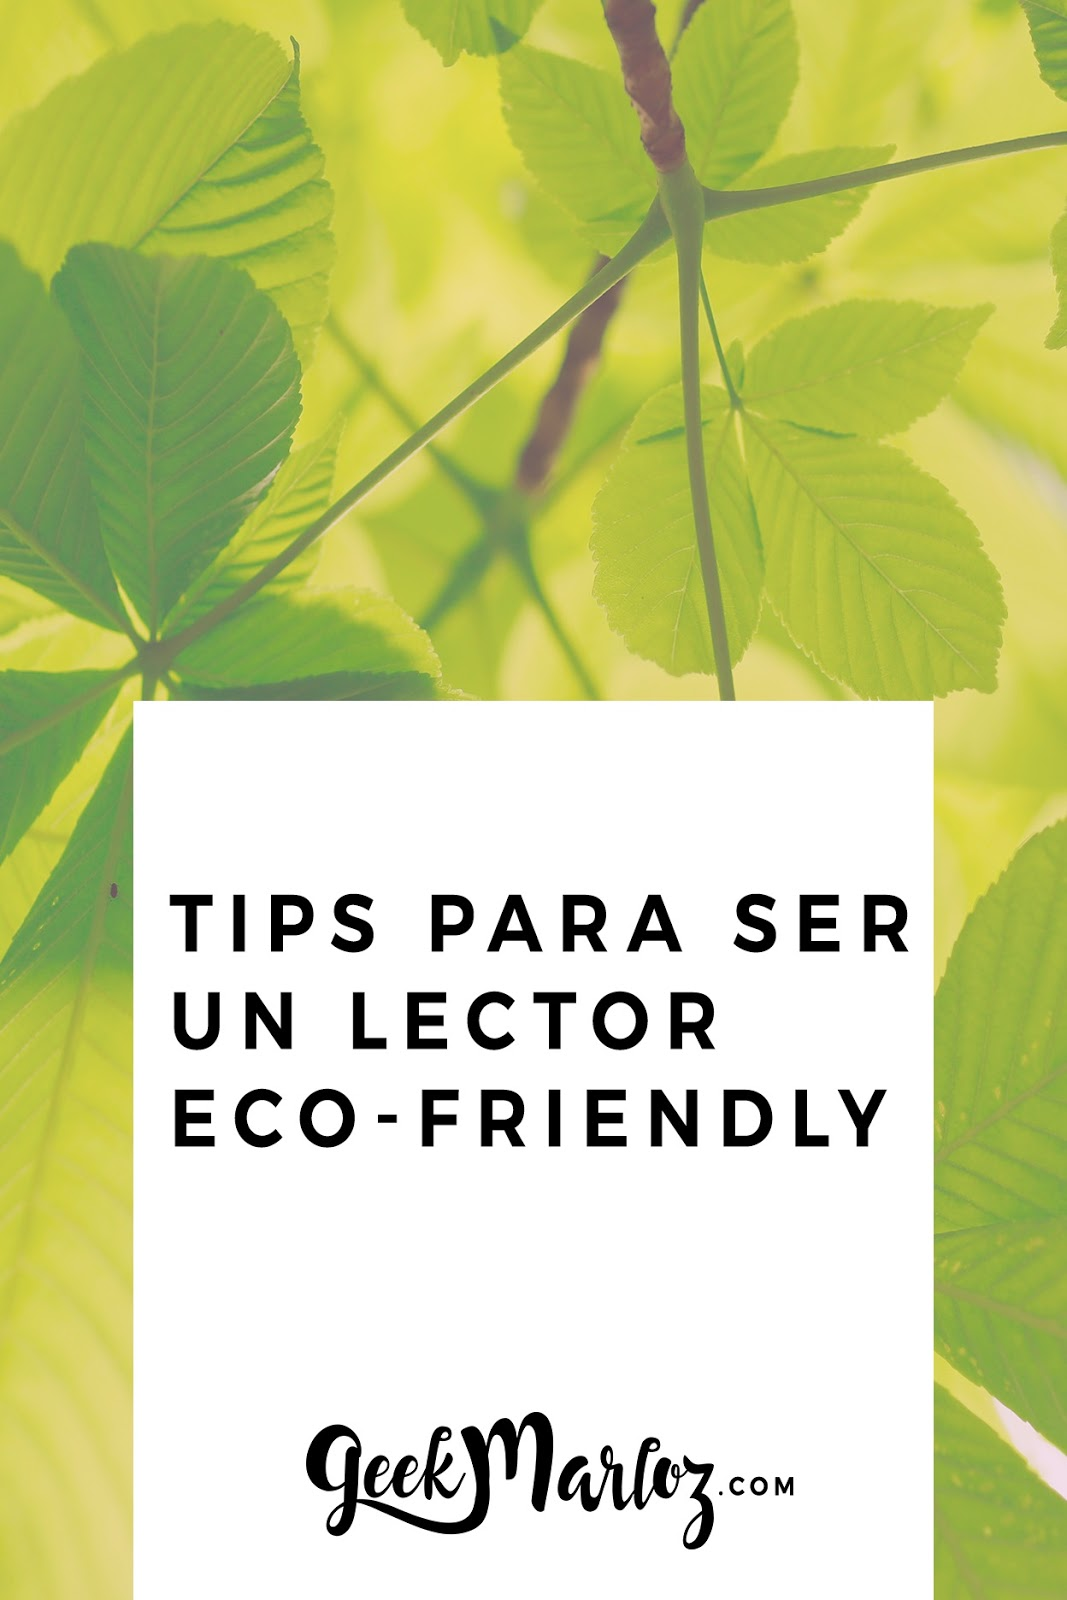 Tips para ser un lector eco-friendly